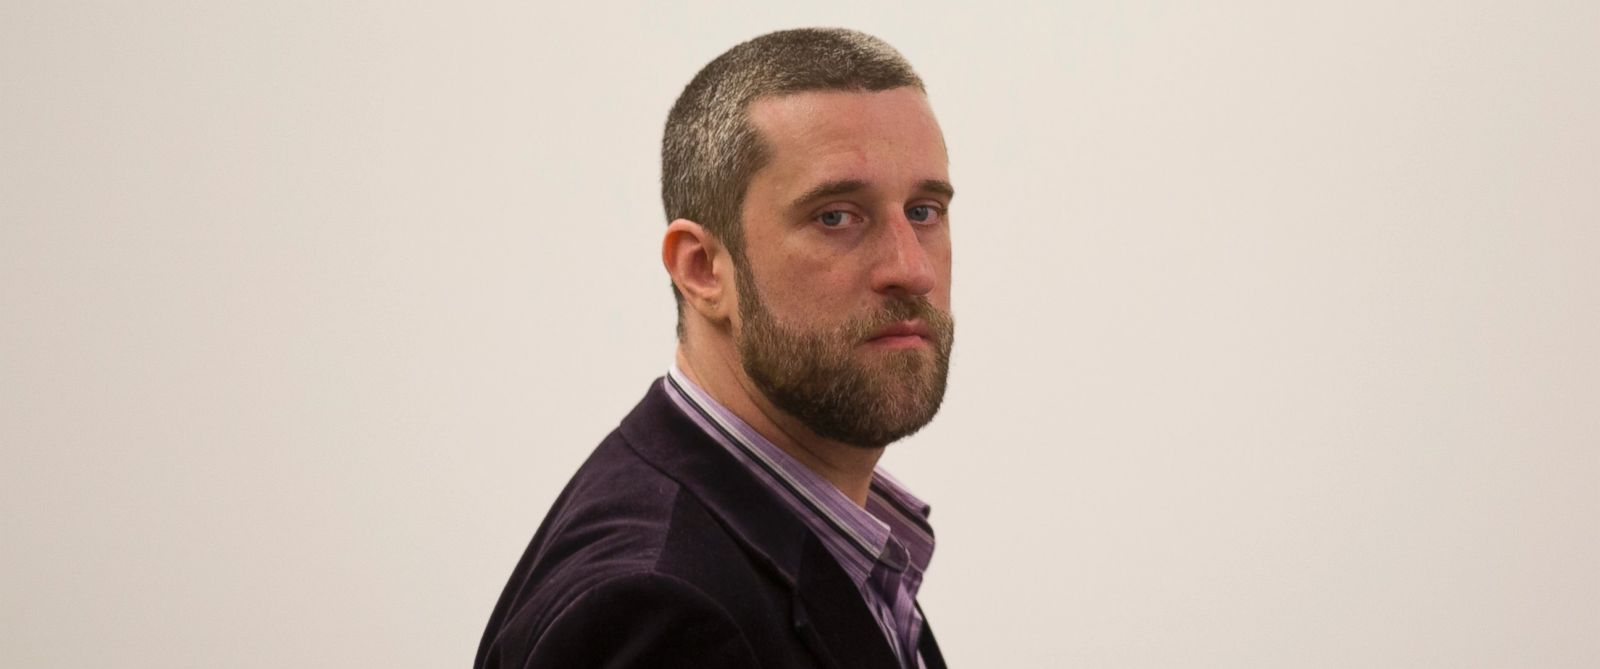 Dustin Diamond HQ wallpapers